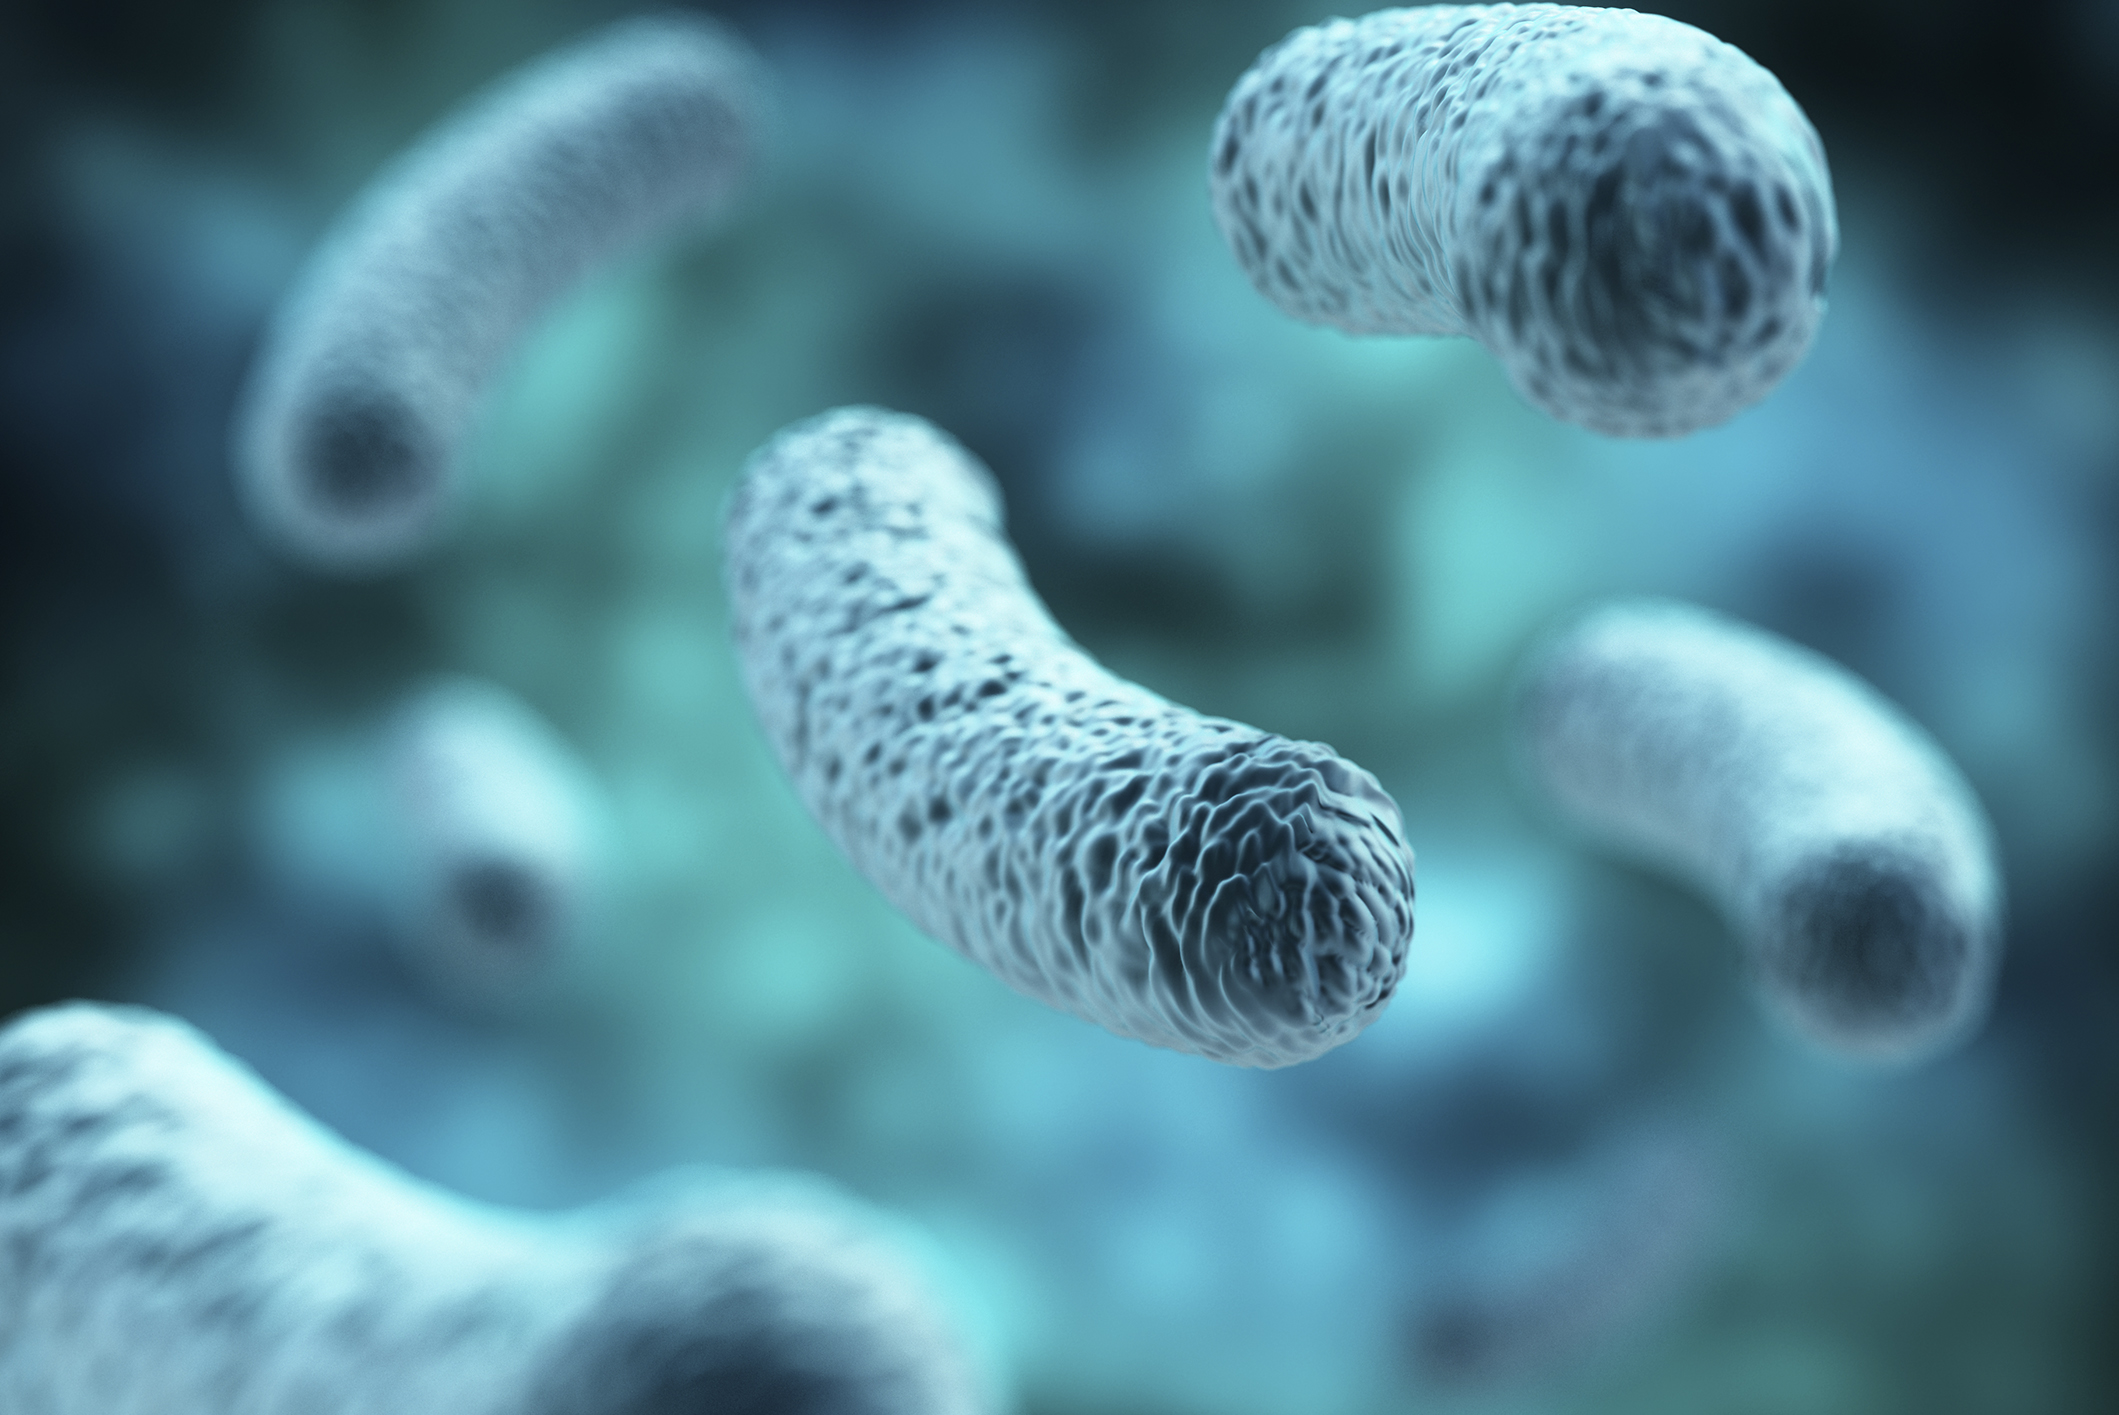 Legionnaires' disease | Experienced Legionnaires Lawyer Elliot Olsen | Siegel Brill Injury Law | Legionnaires' Attorney